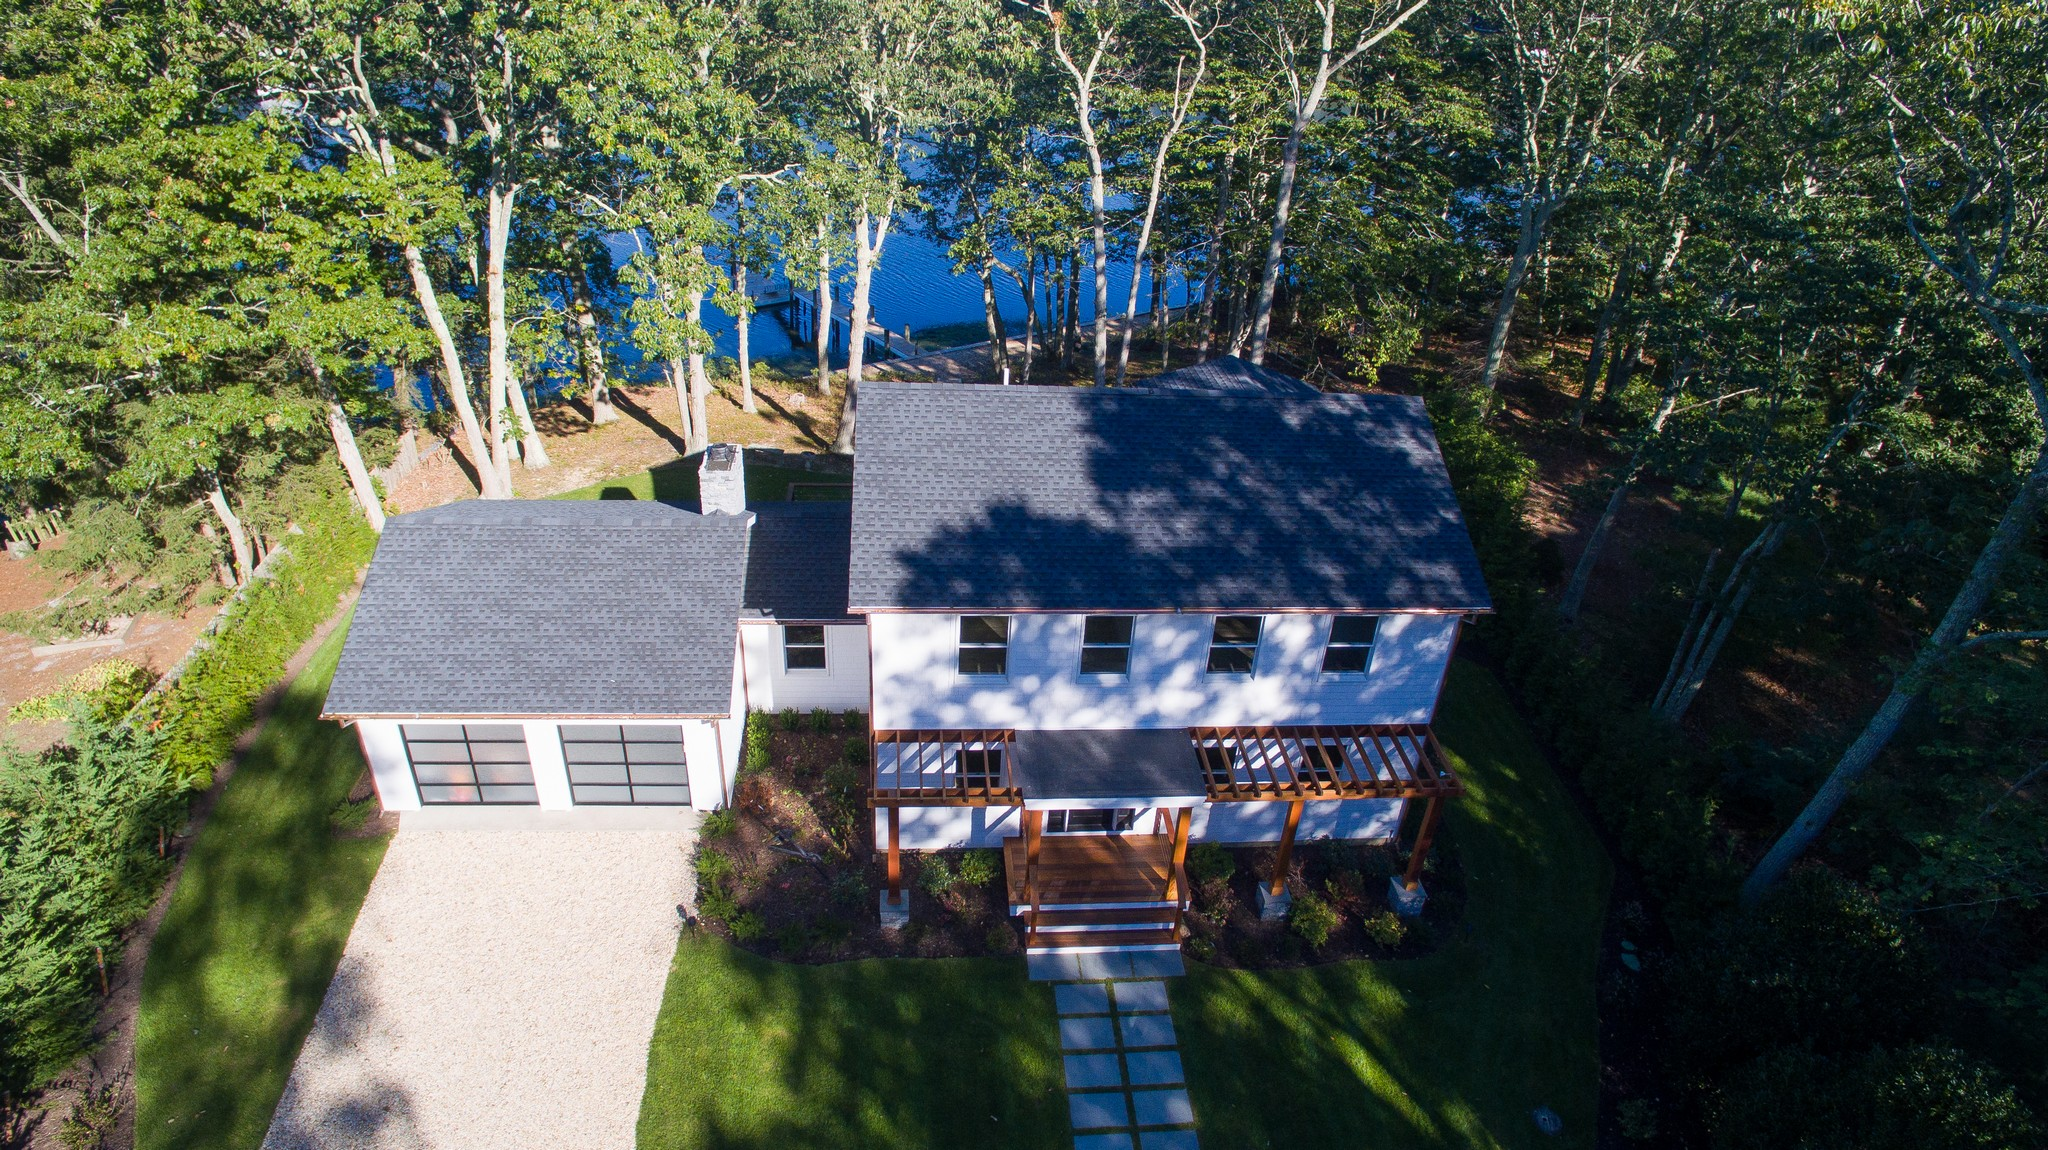 Single Family Home for Sale at 615 South Dr , Mattituck, NY 11952 615 South Dr Mattituck, New York 11952 United States